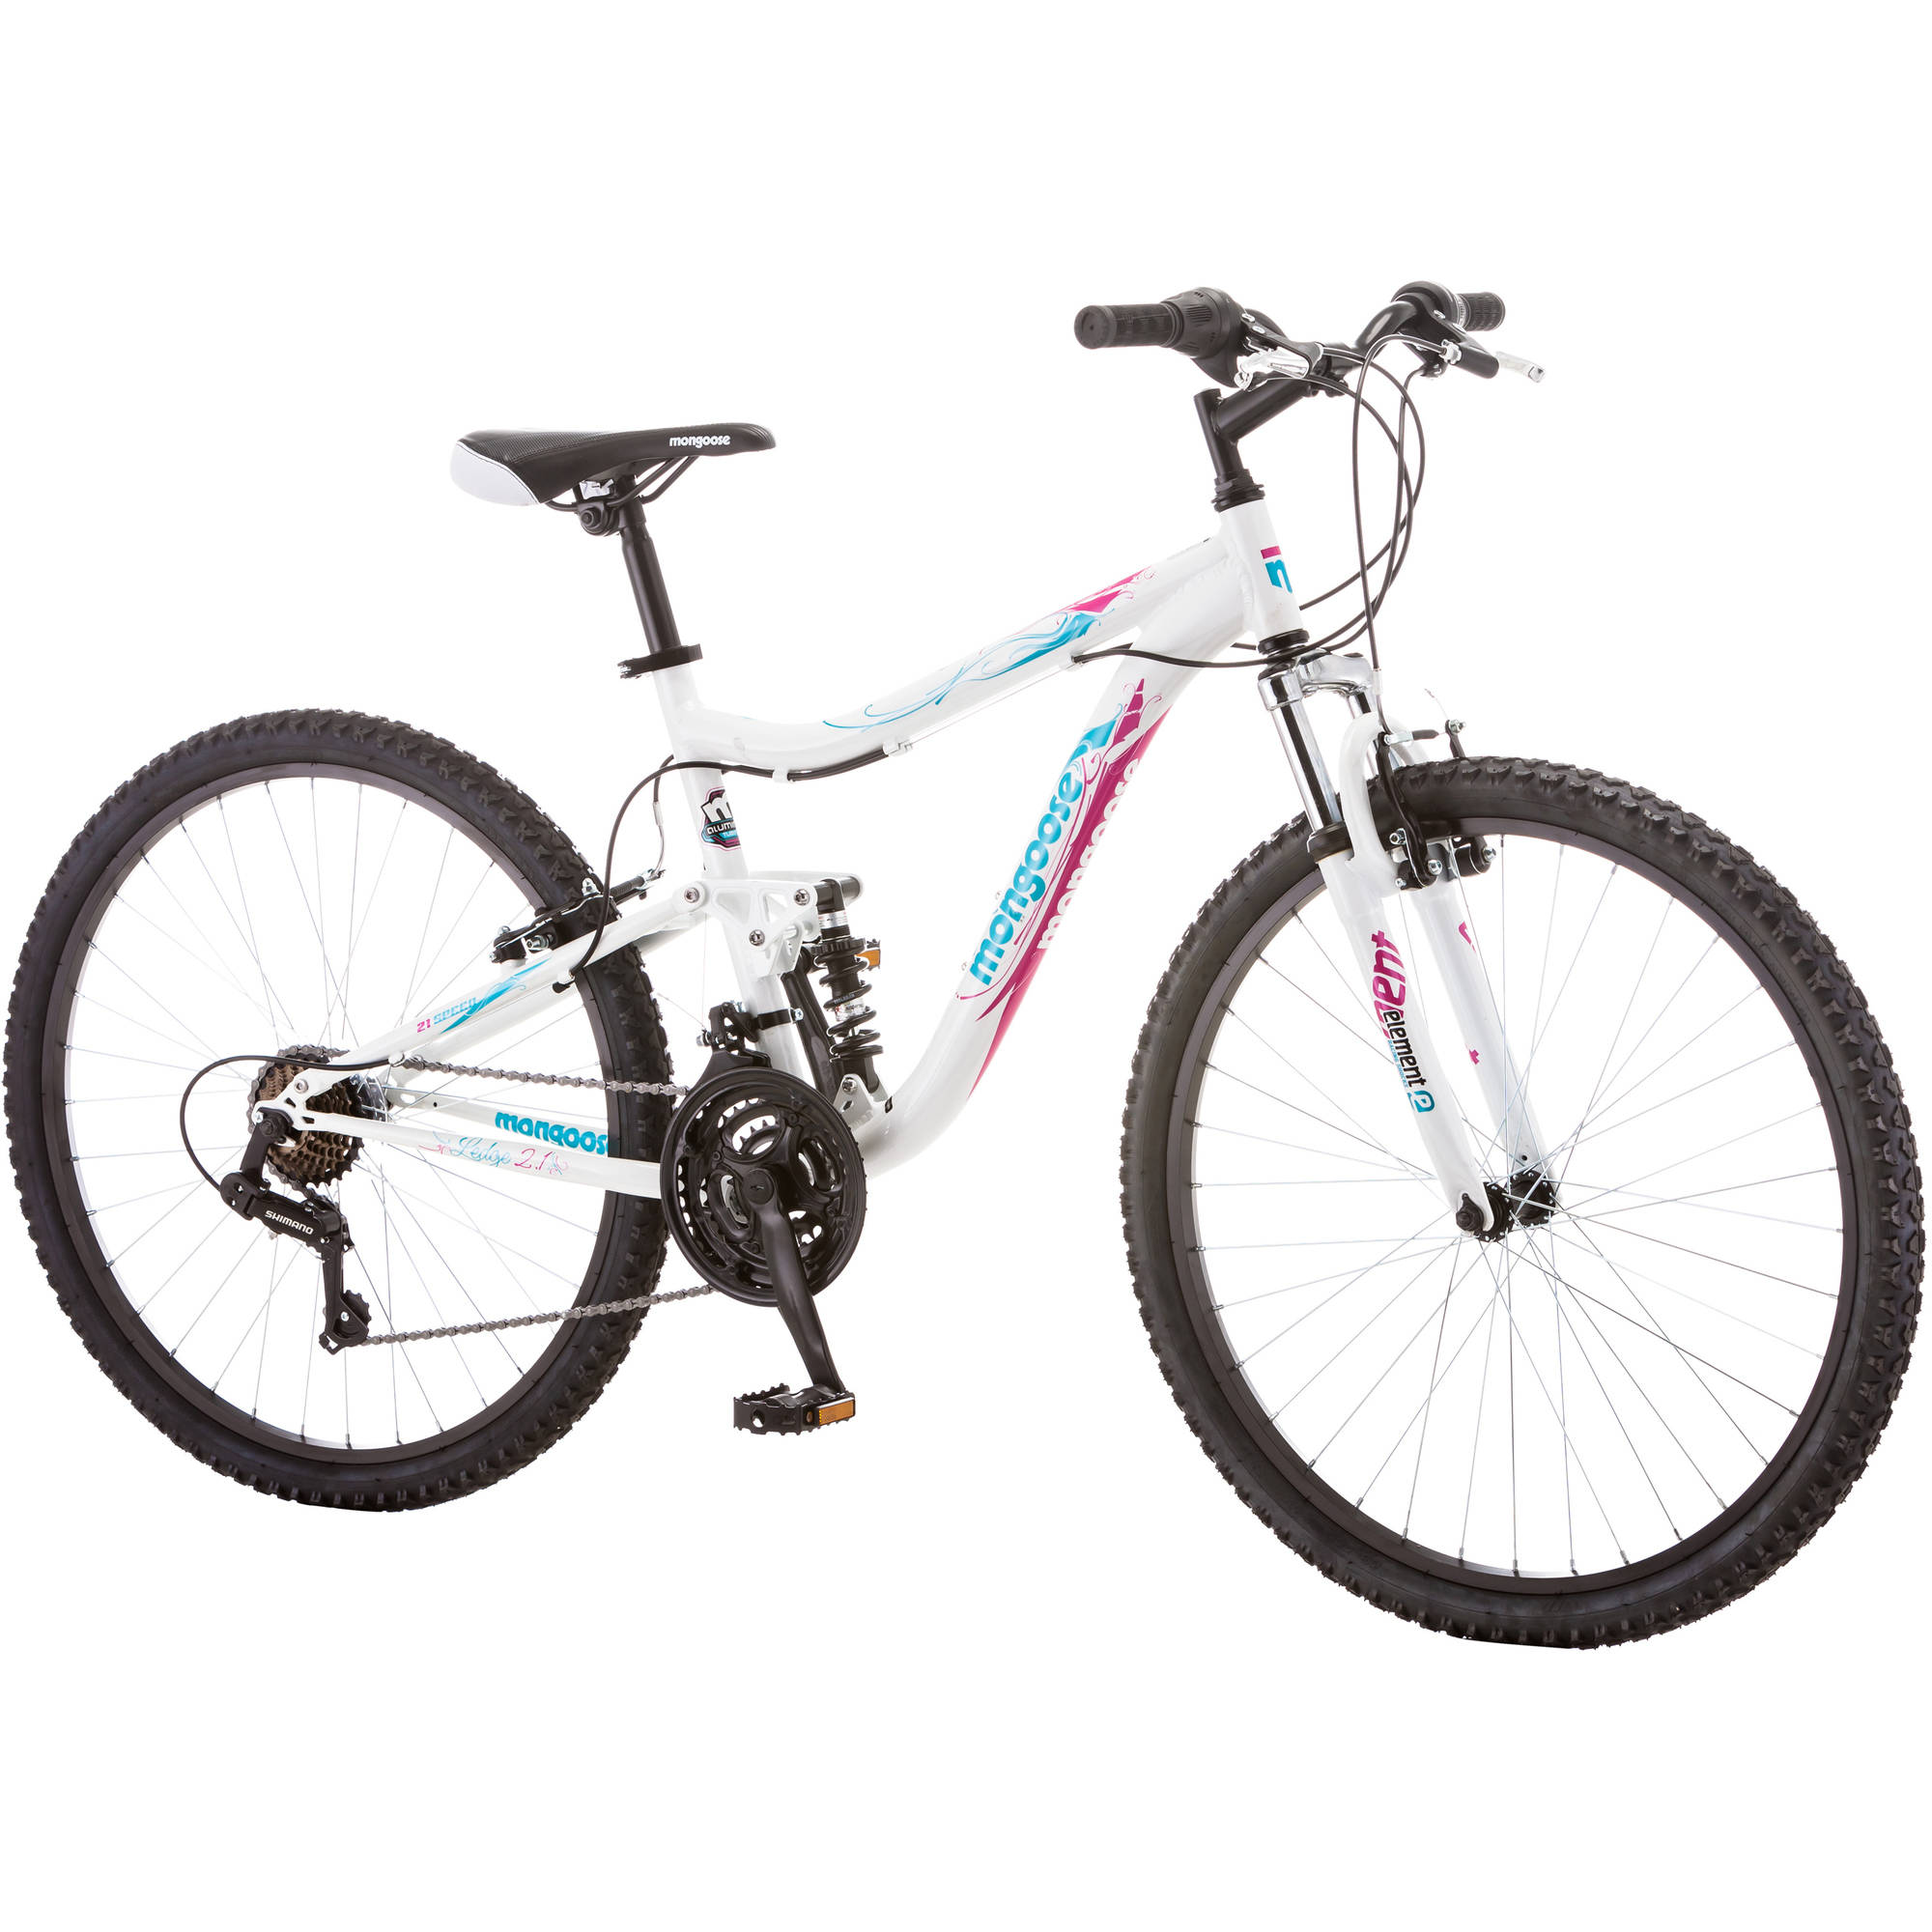 26 Mongoose Ledge 2 1 Women S Mountain Bike White Purple